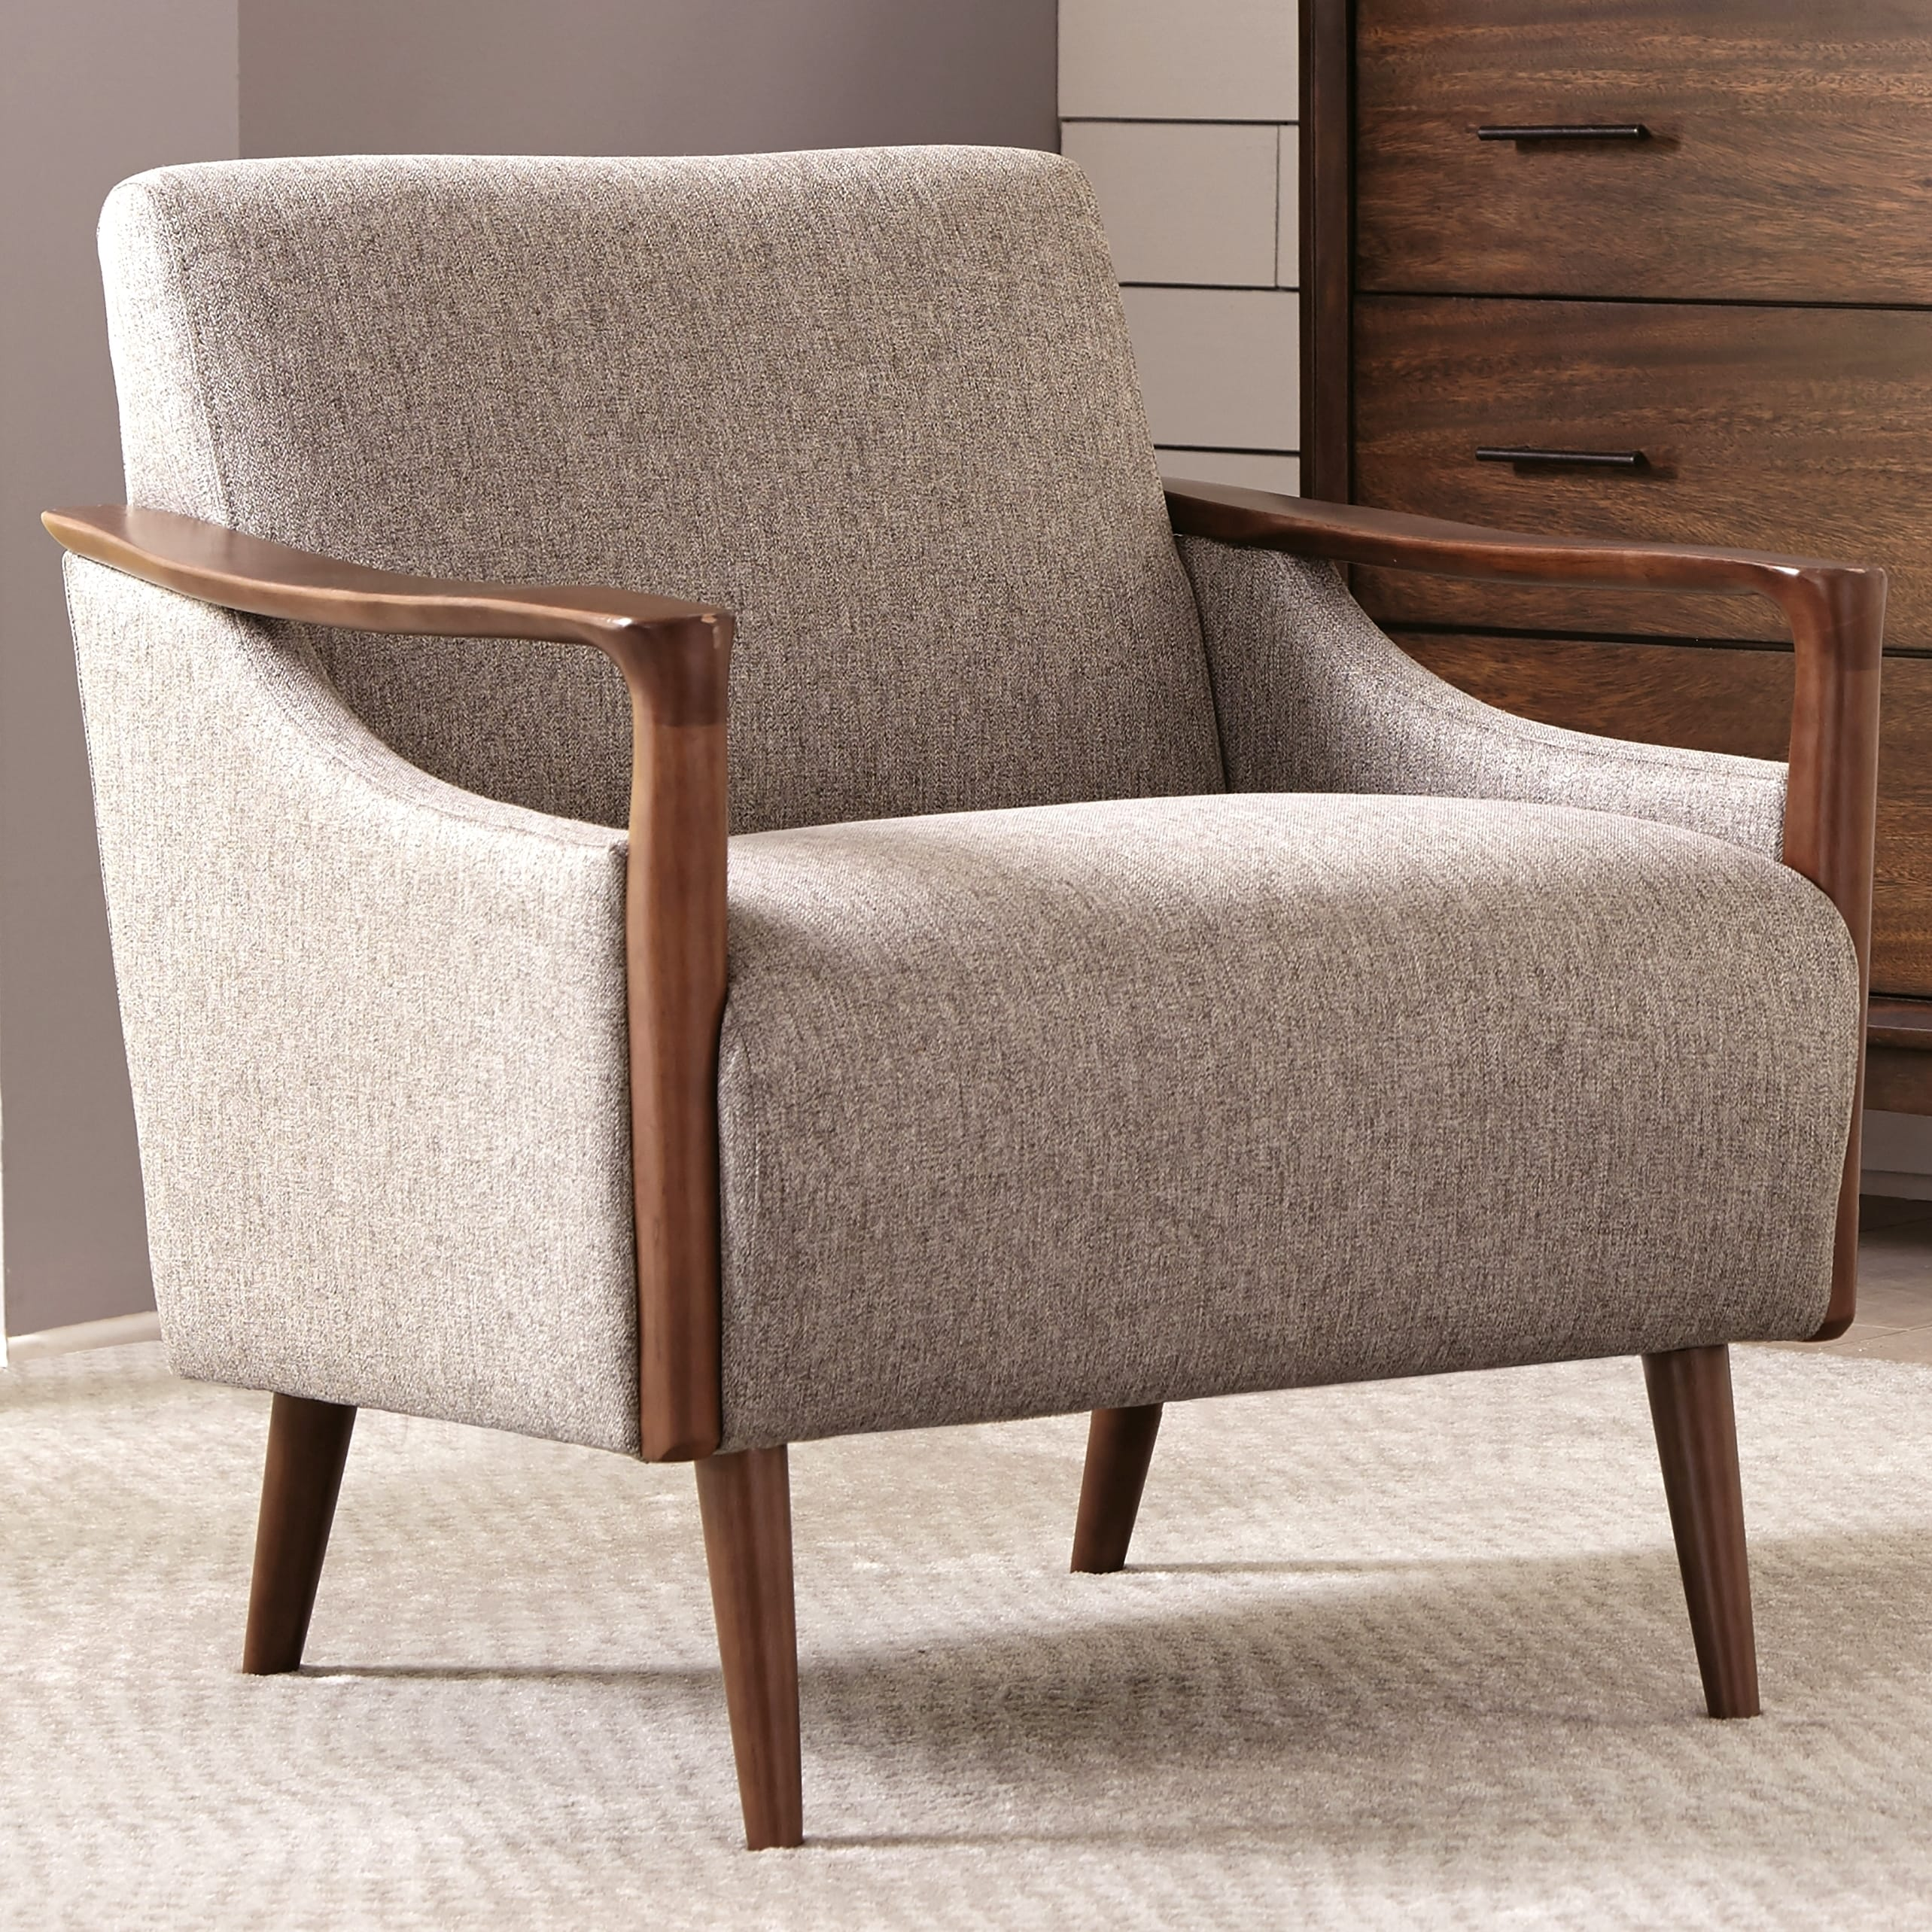 Accent Chair Living Room Mid Century Modern Design Living Room Accent Chair